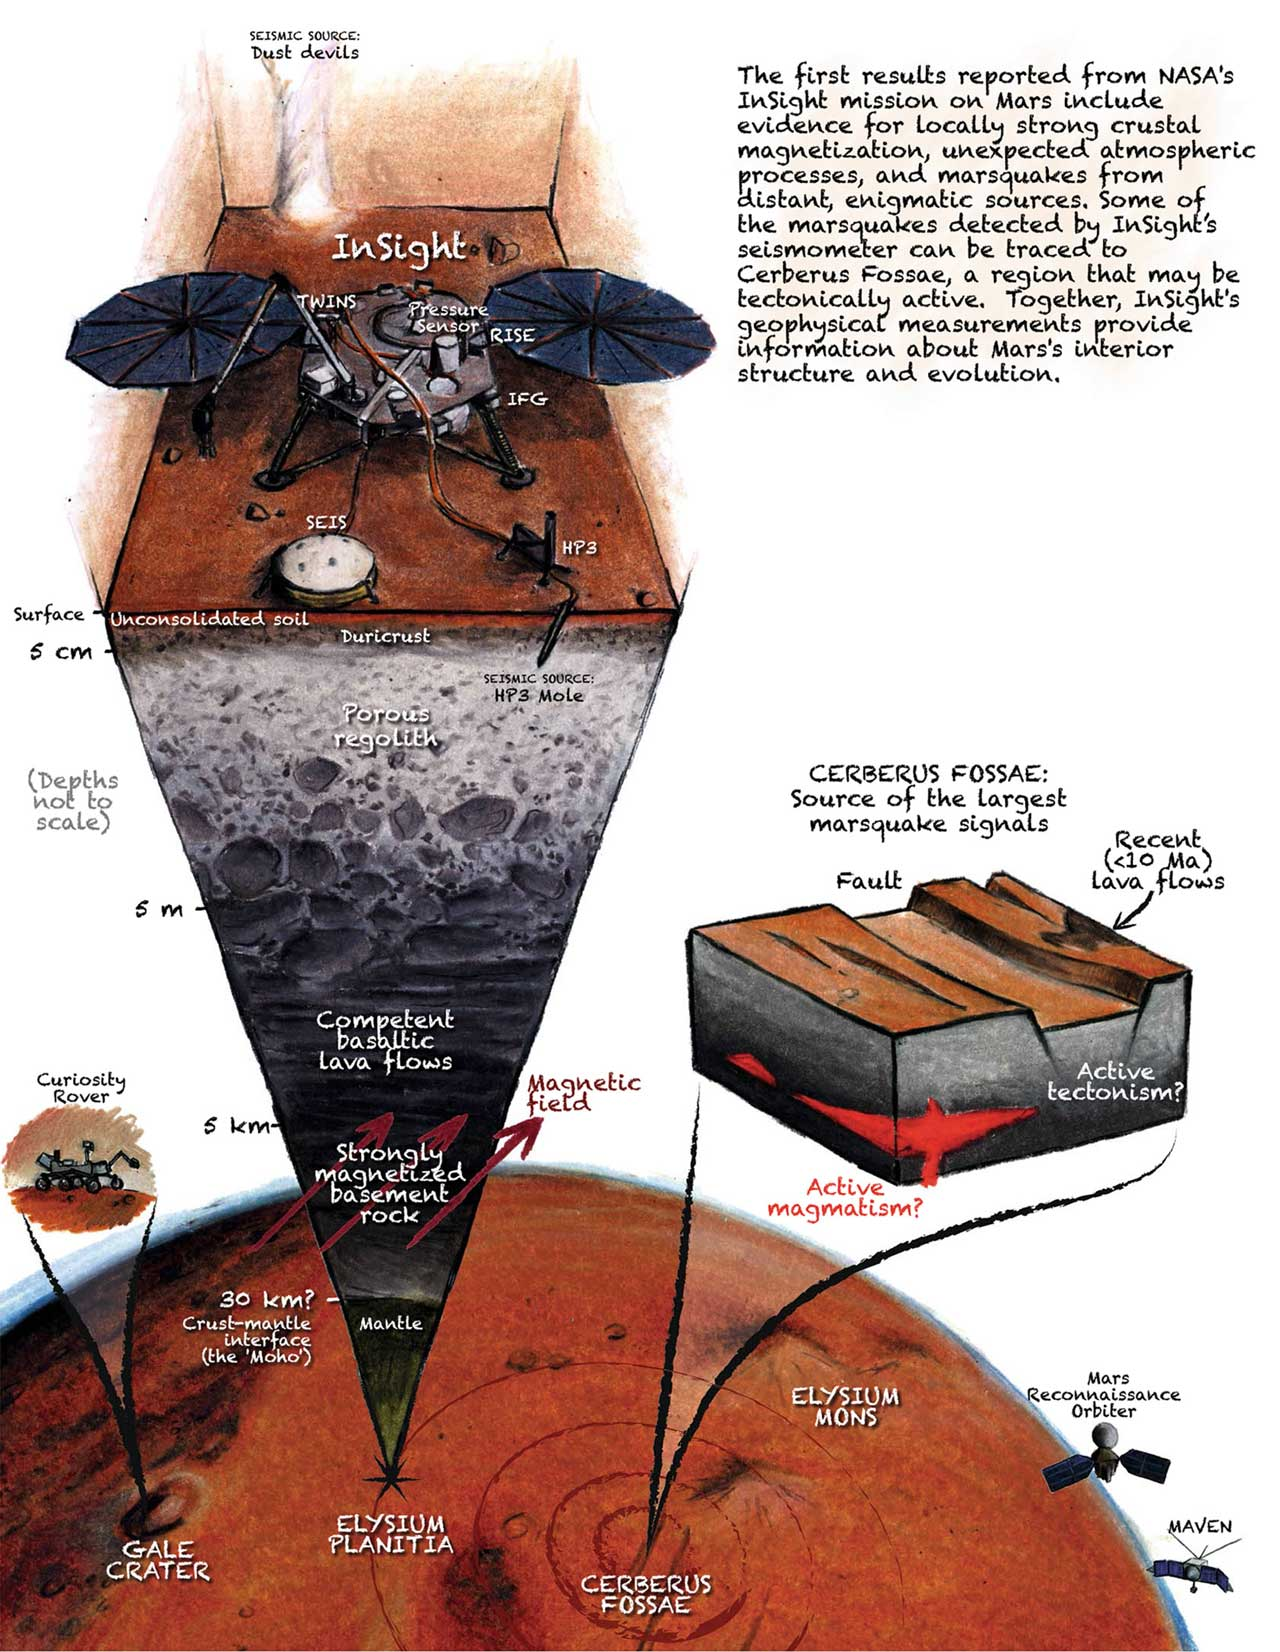 A cutaway view of Mars showing the InSight lander studying seismic activity.